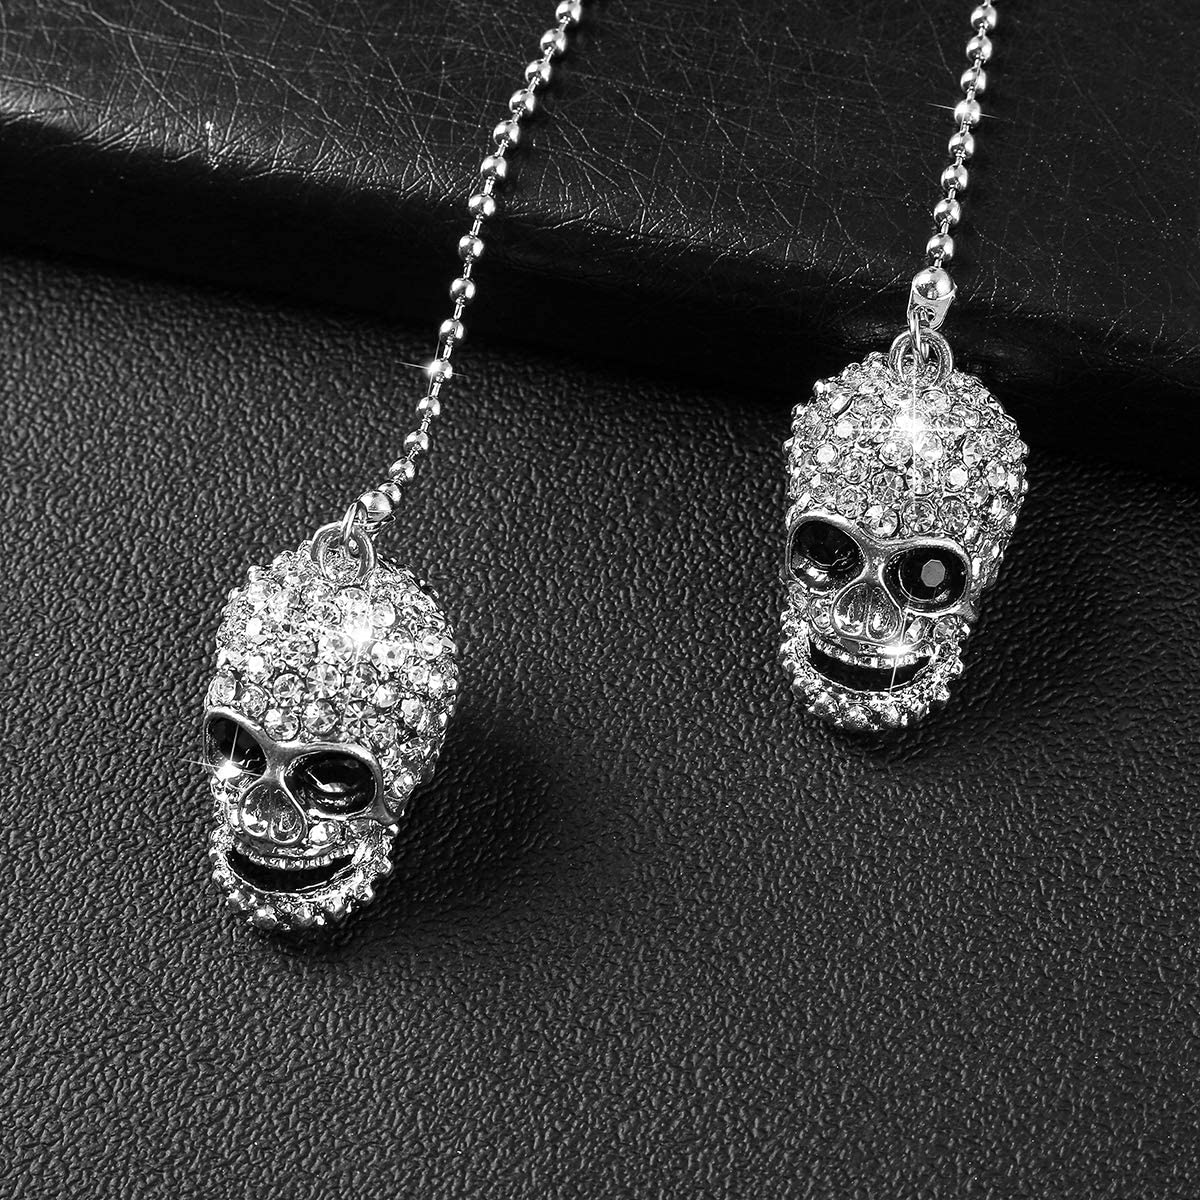 Alotex Bling White Skull Car Accessories Pair of Skull Hanging Charms for Rear View Mirror Lucky Car Decoration Interior Ornament Pendant (White Skull)